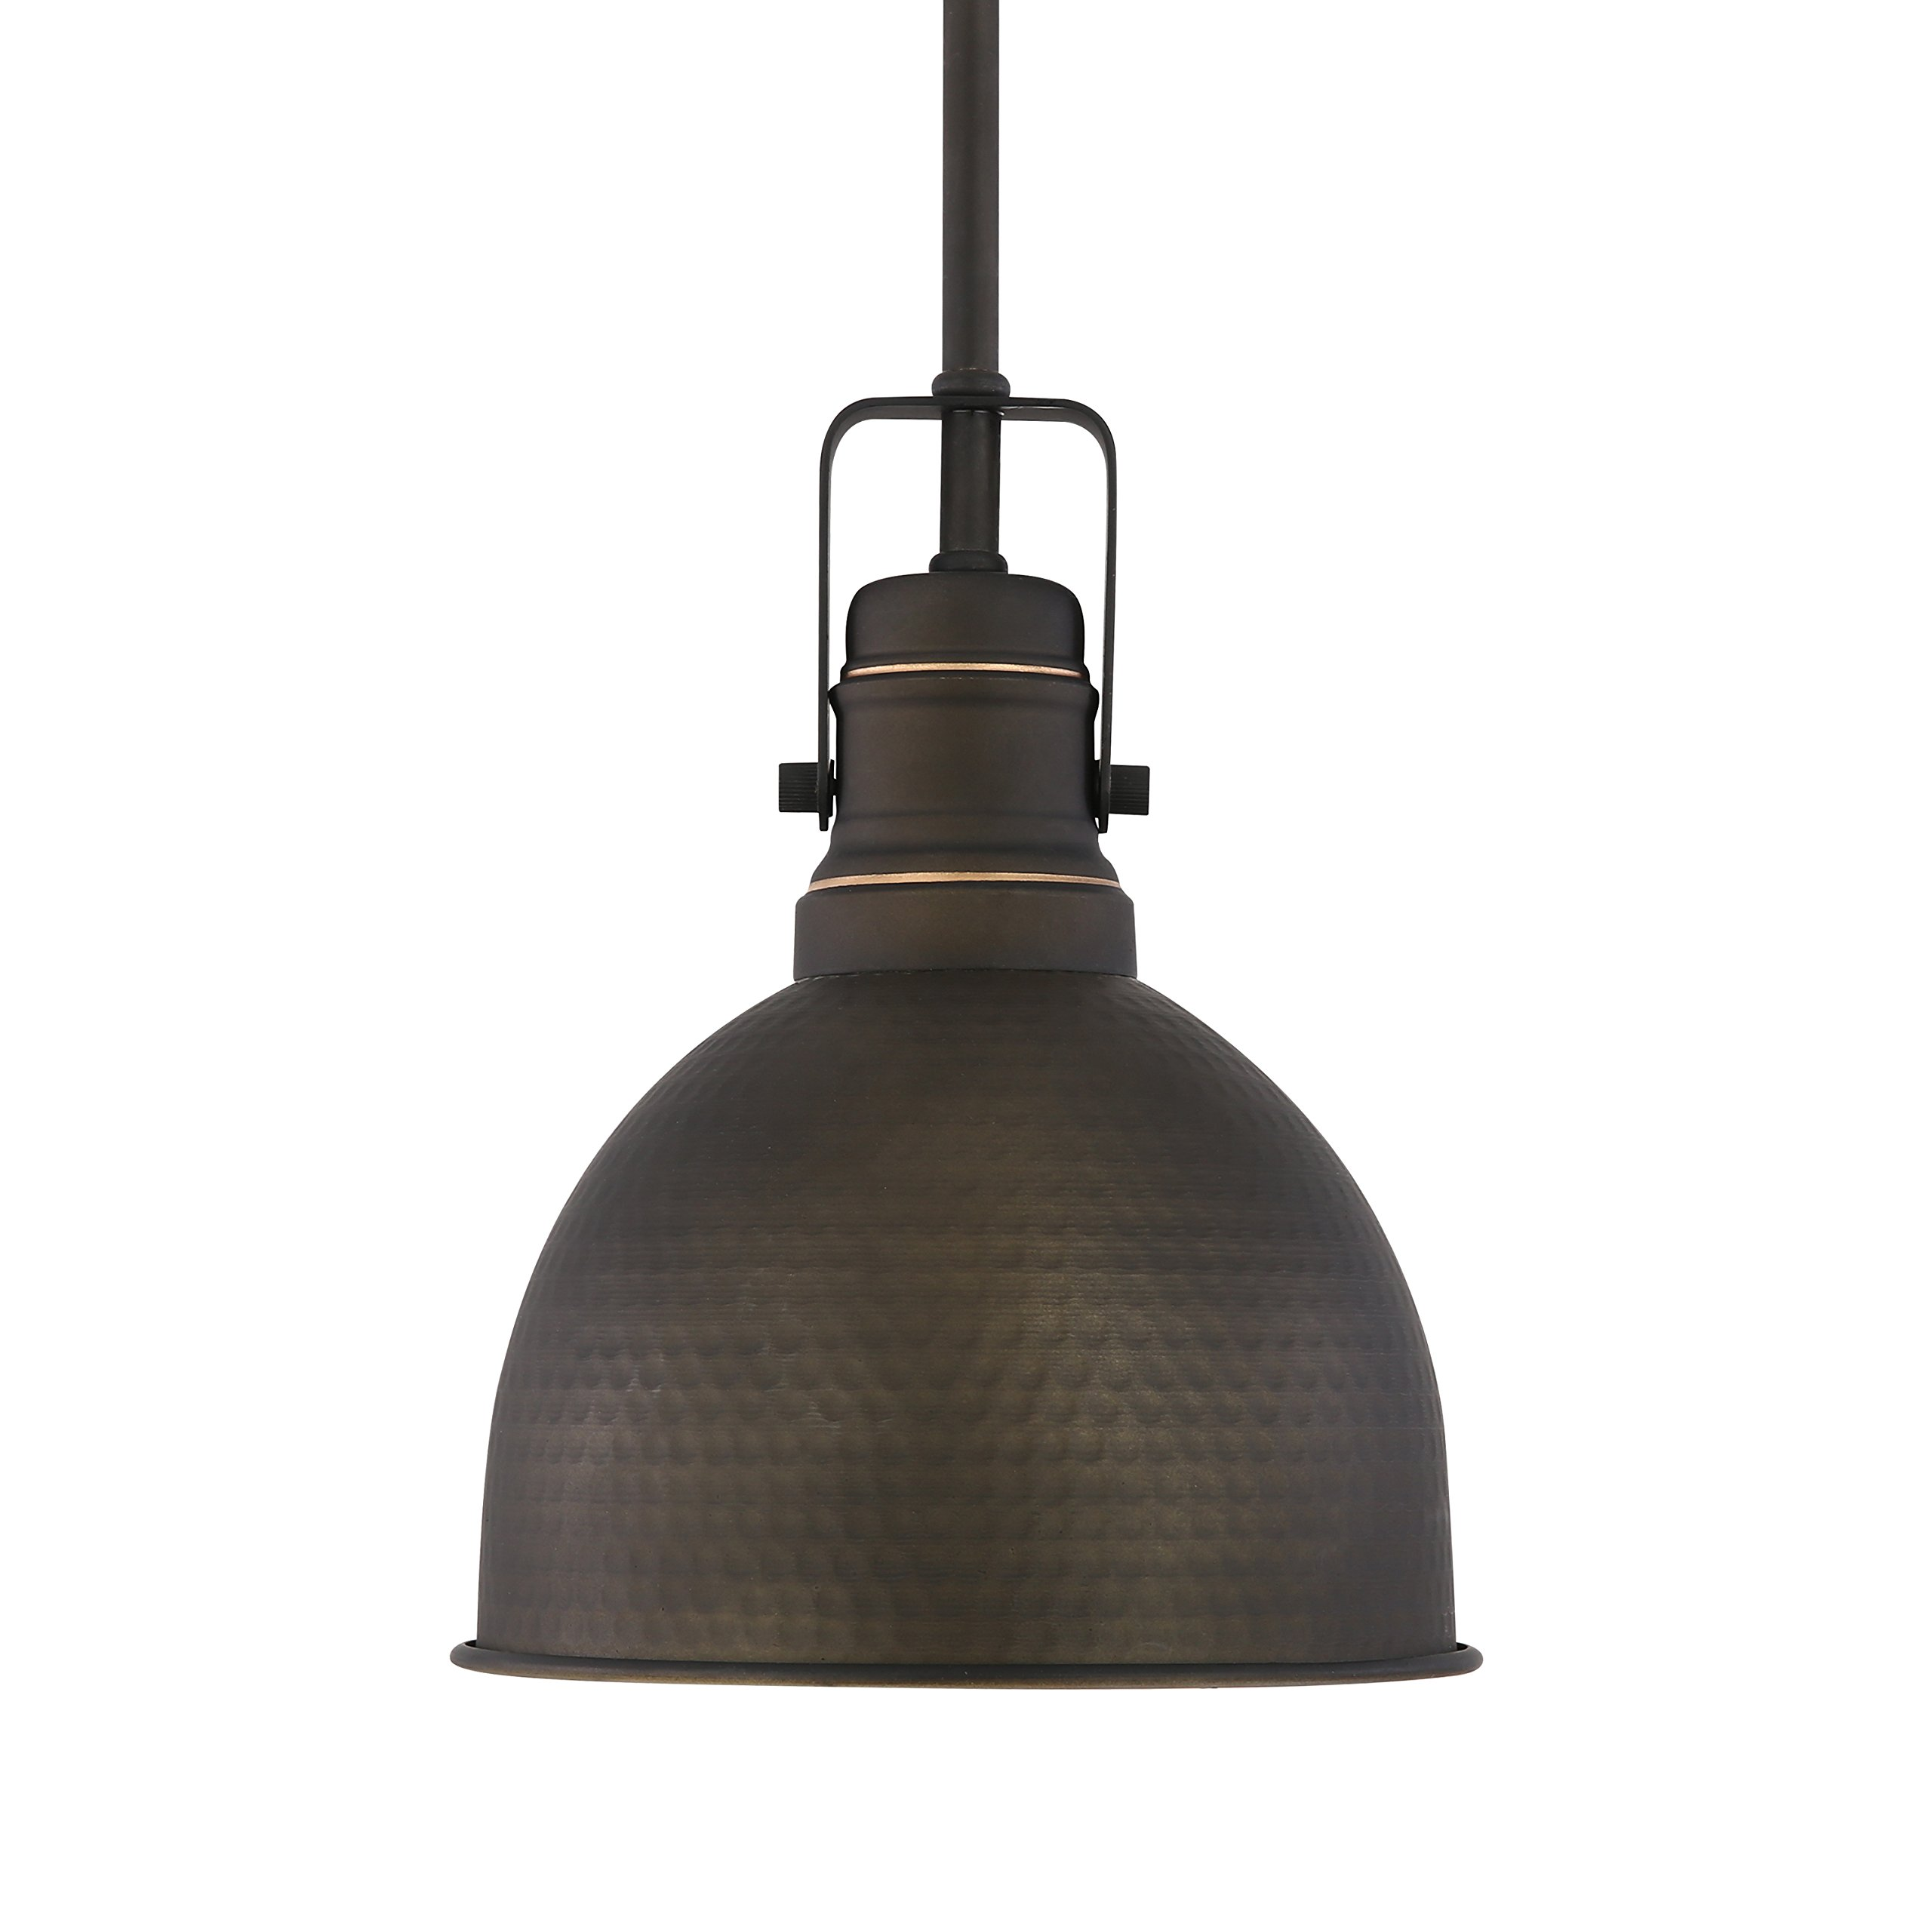 Light Society Hampshire Farmhouse Pendant Lamp, Hammered Oil Rubbed Bronze with Gold Interior, Vintage Industrial Modern Lighting Fixture (LS-C248-ORB)